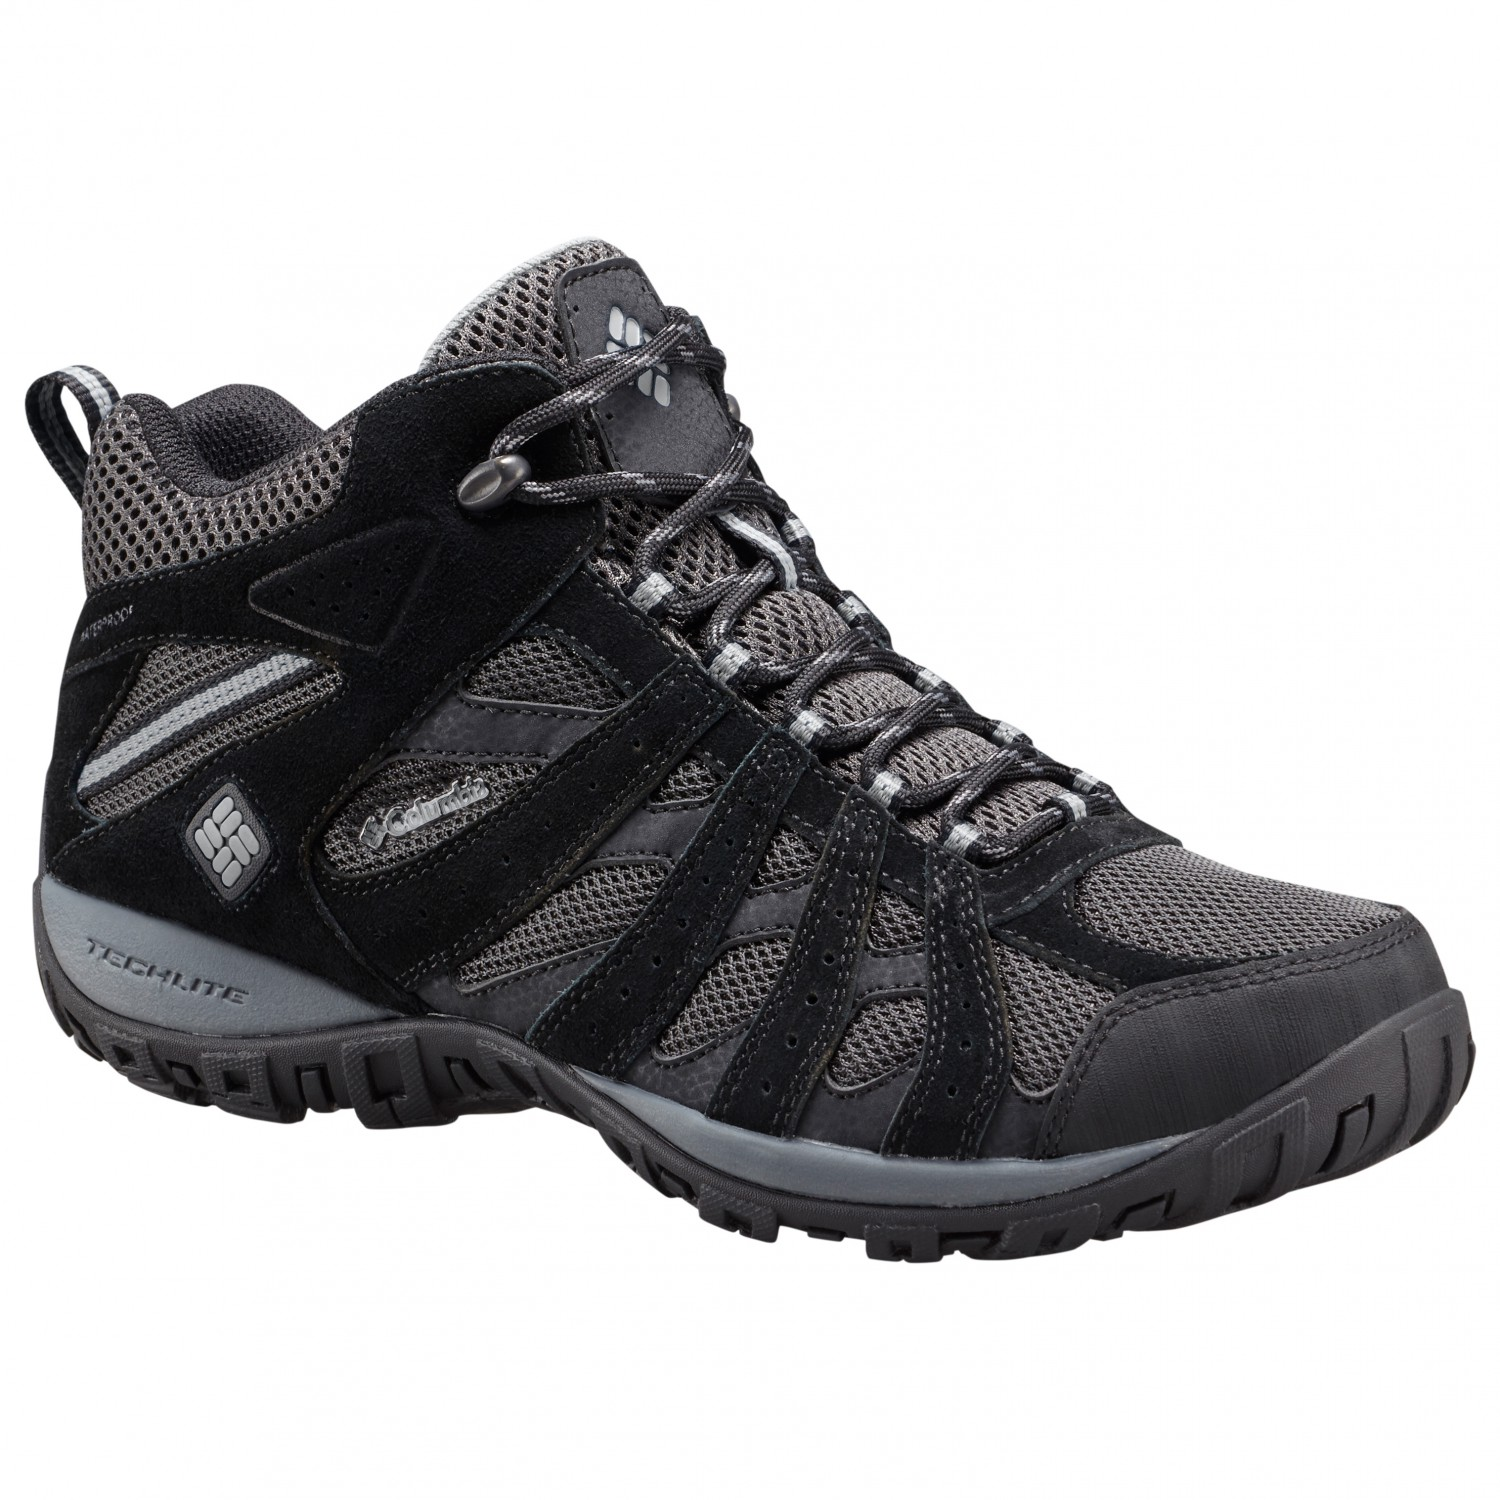 Columbia Redmond Mid Waterproof Walking Boots Men S Buy Online Bergfreunde Eu